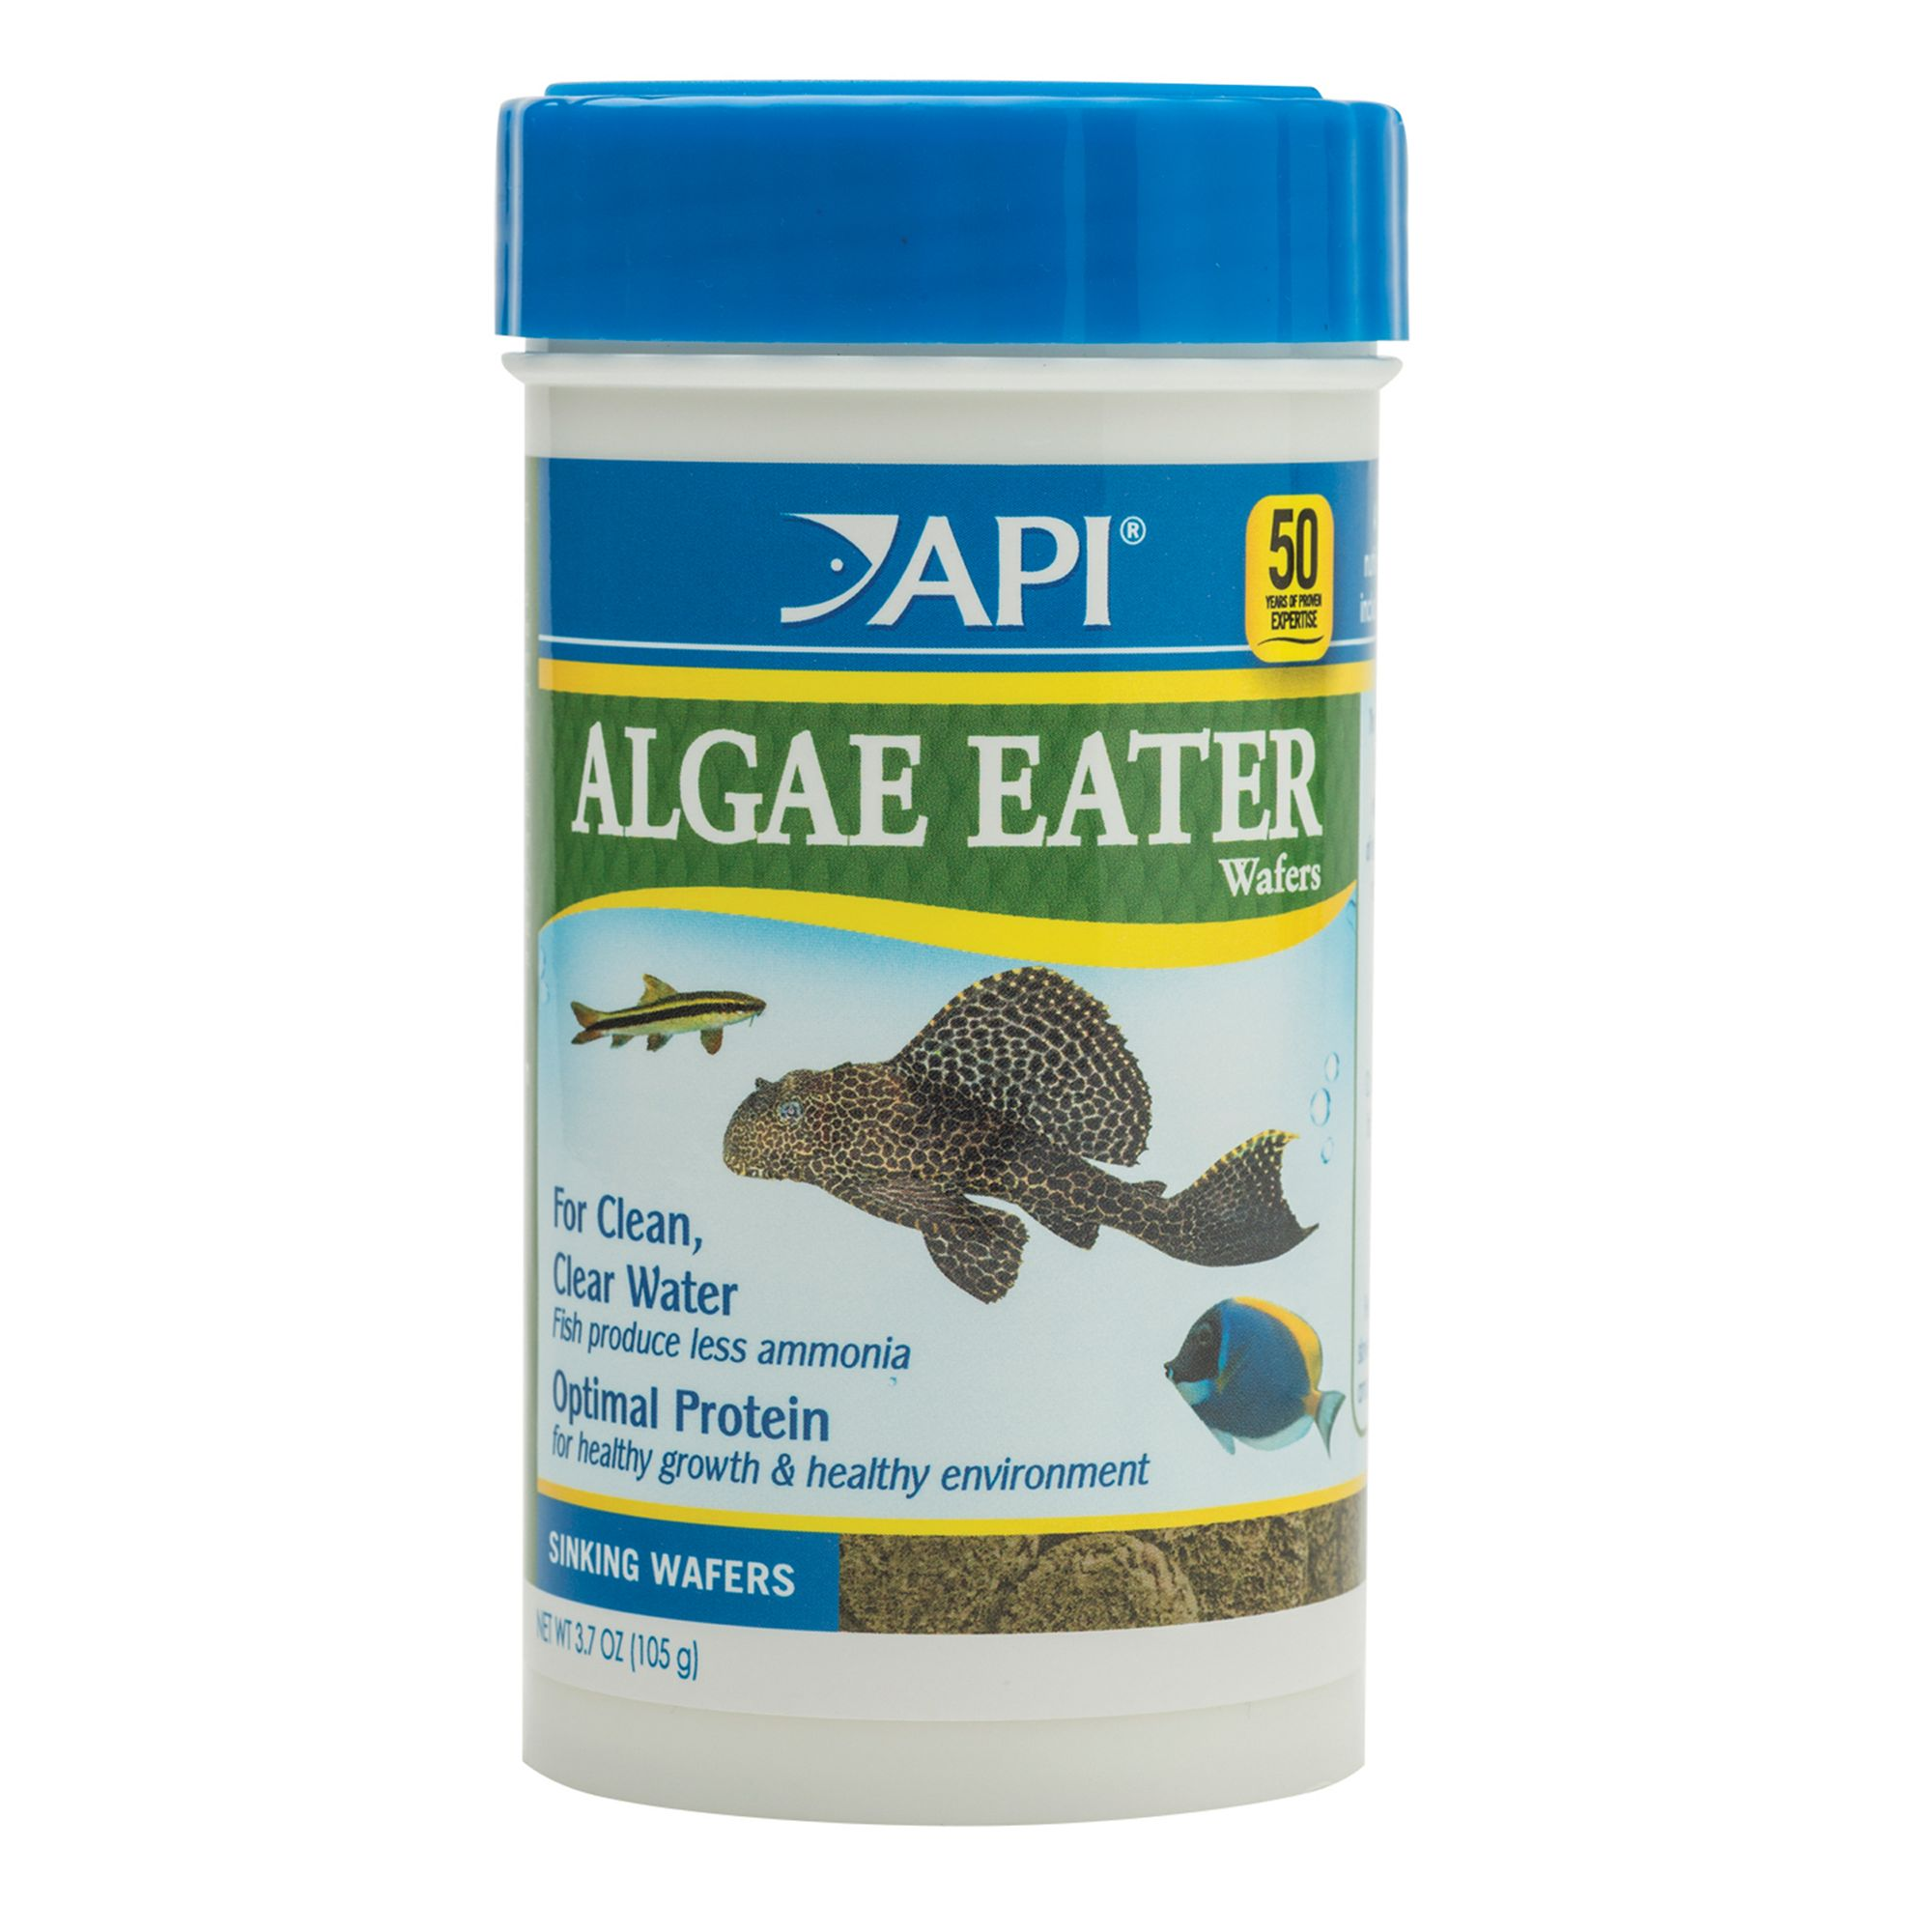 Api Algae Eater Premium Algae Wafers Fish Food size: 3.7 Oz, Wheat flour